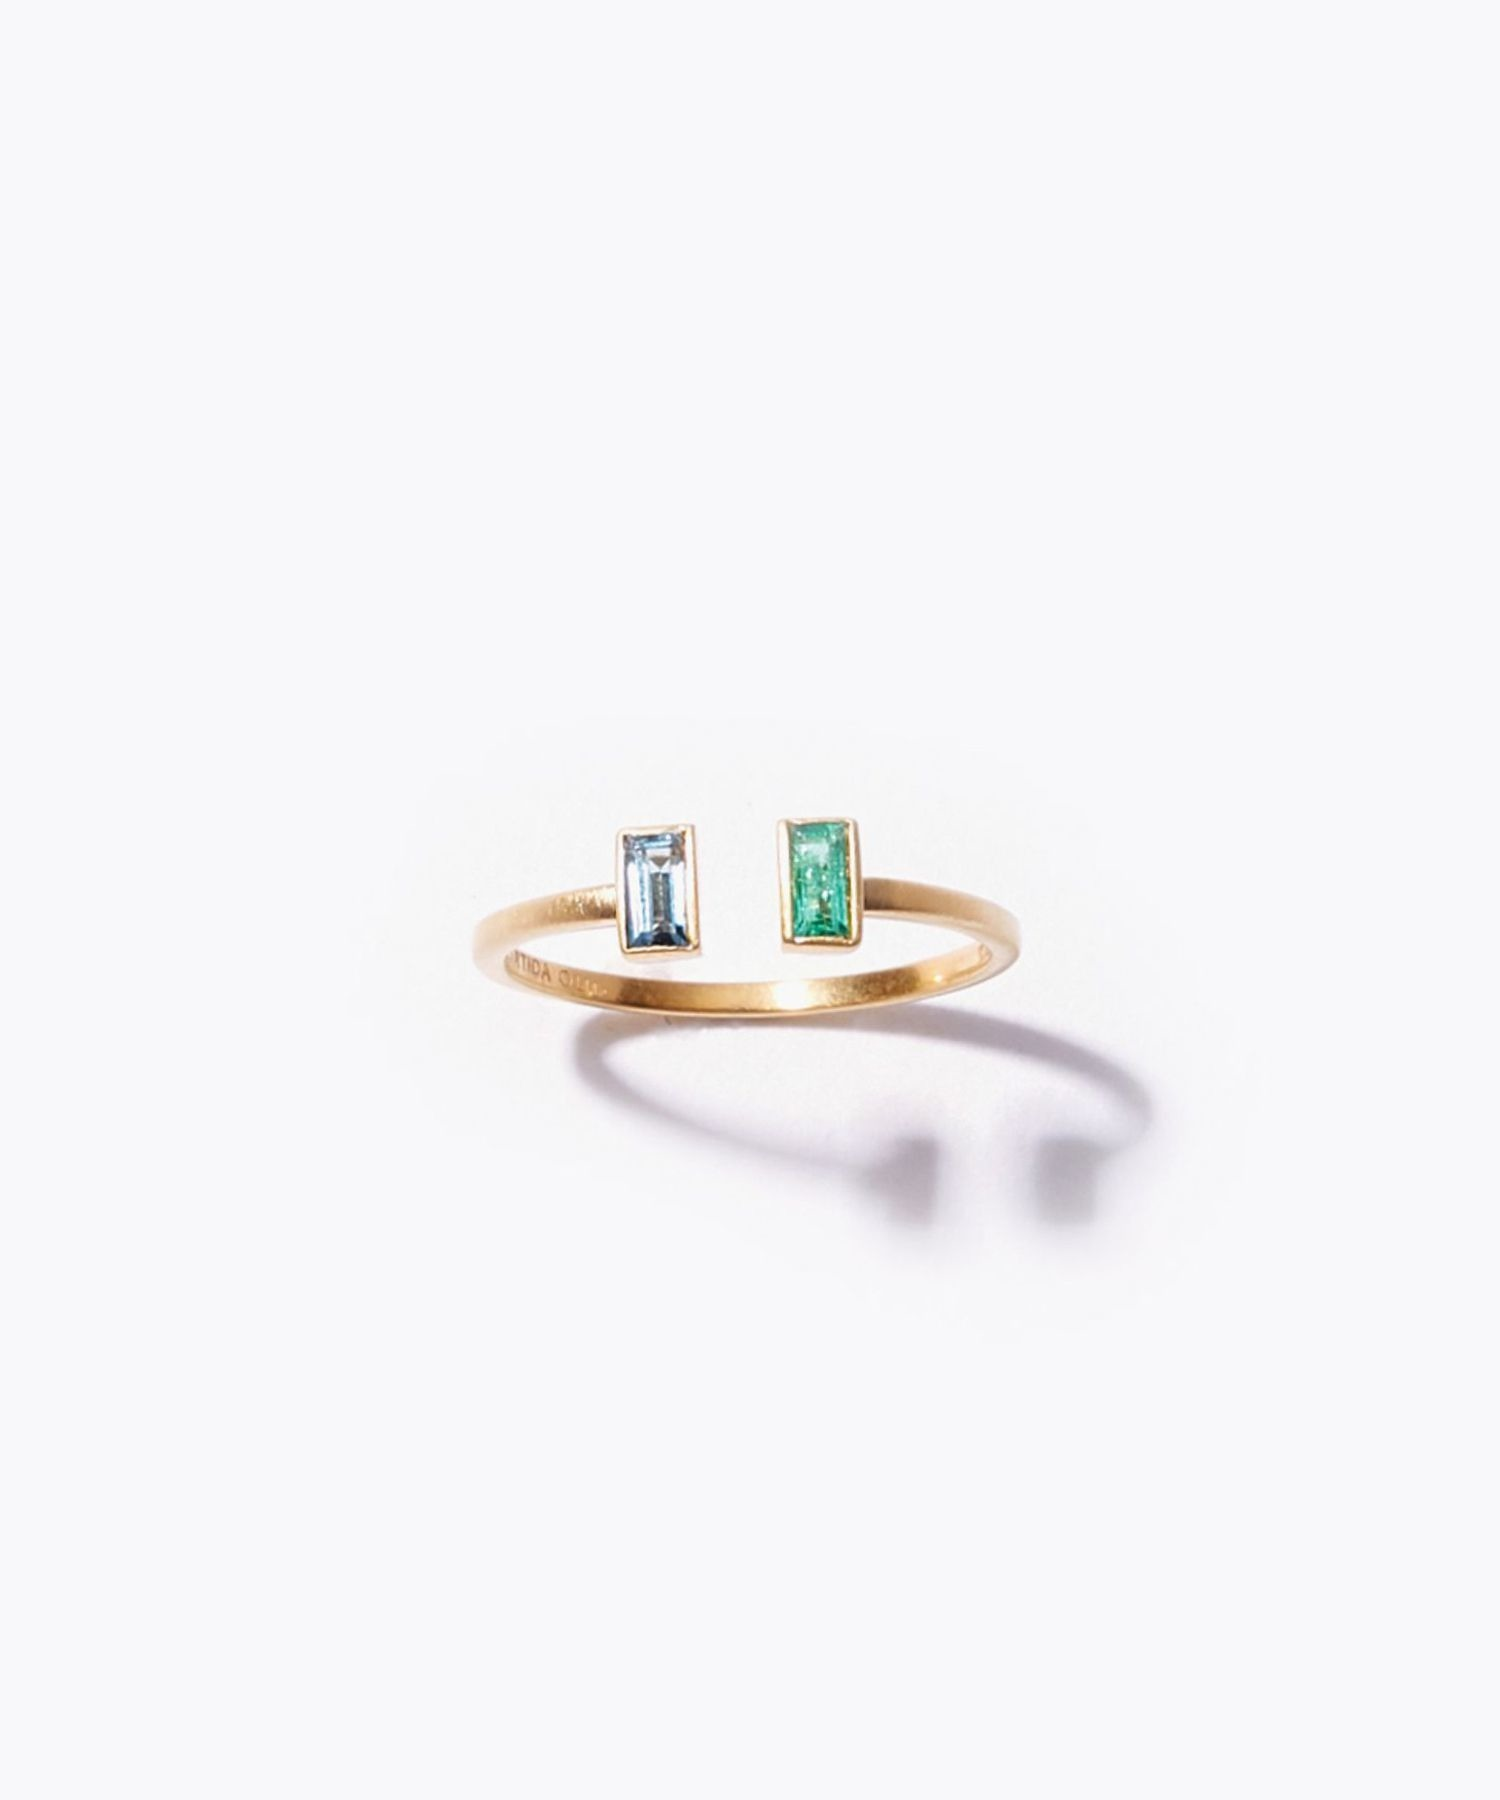 [eden] K10 rectangle emerald and london blue topaz open ring